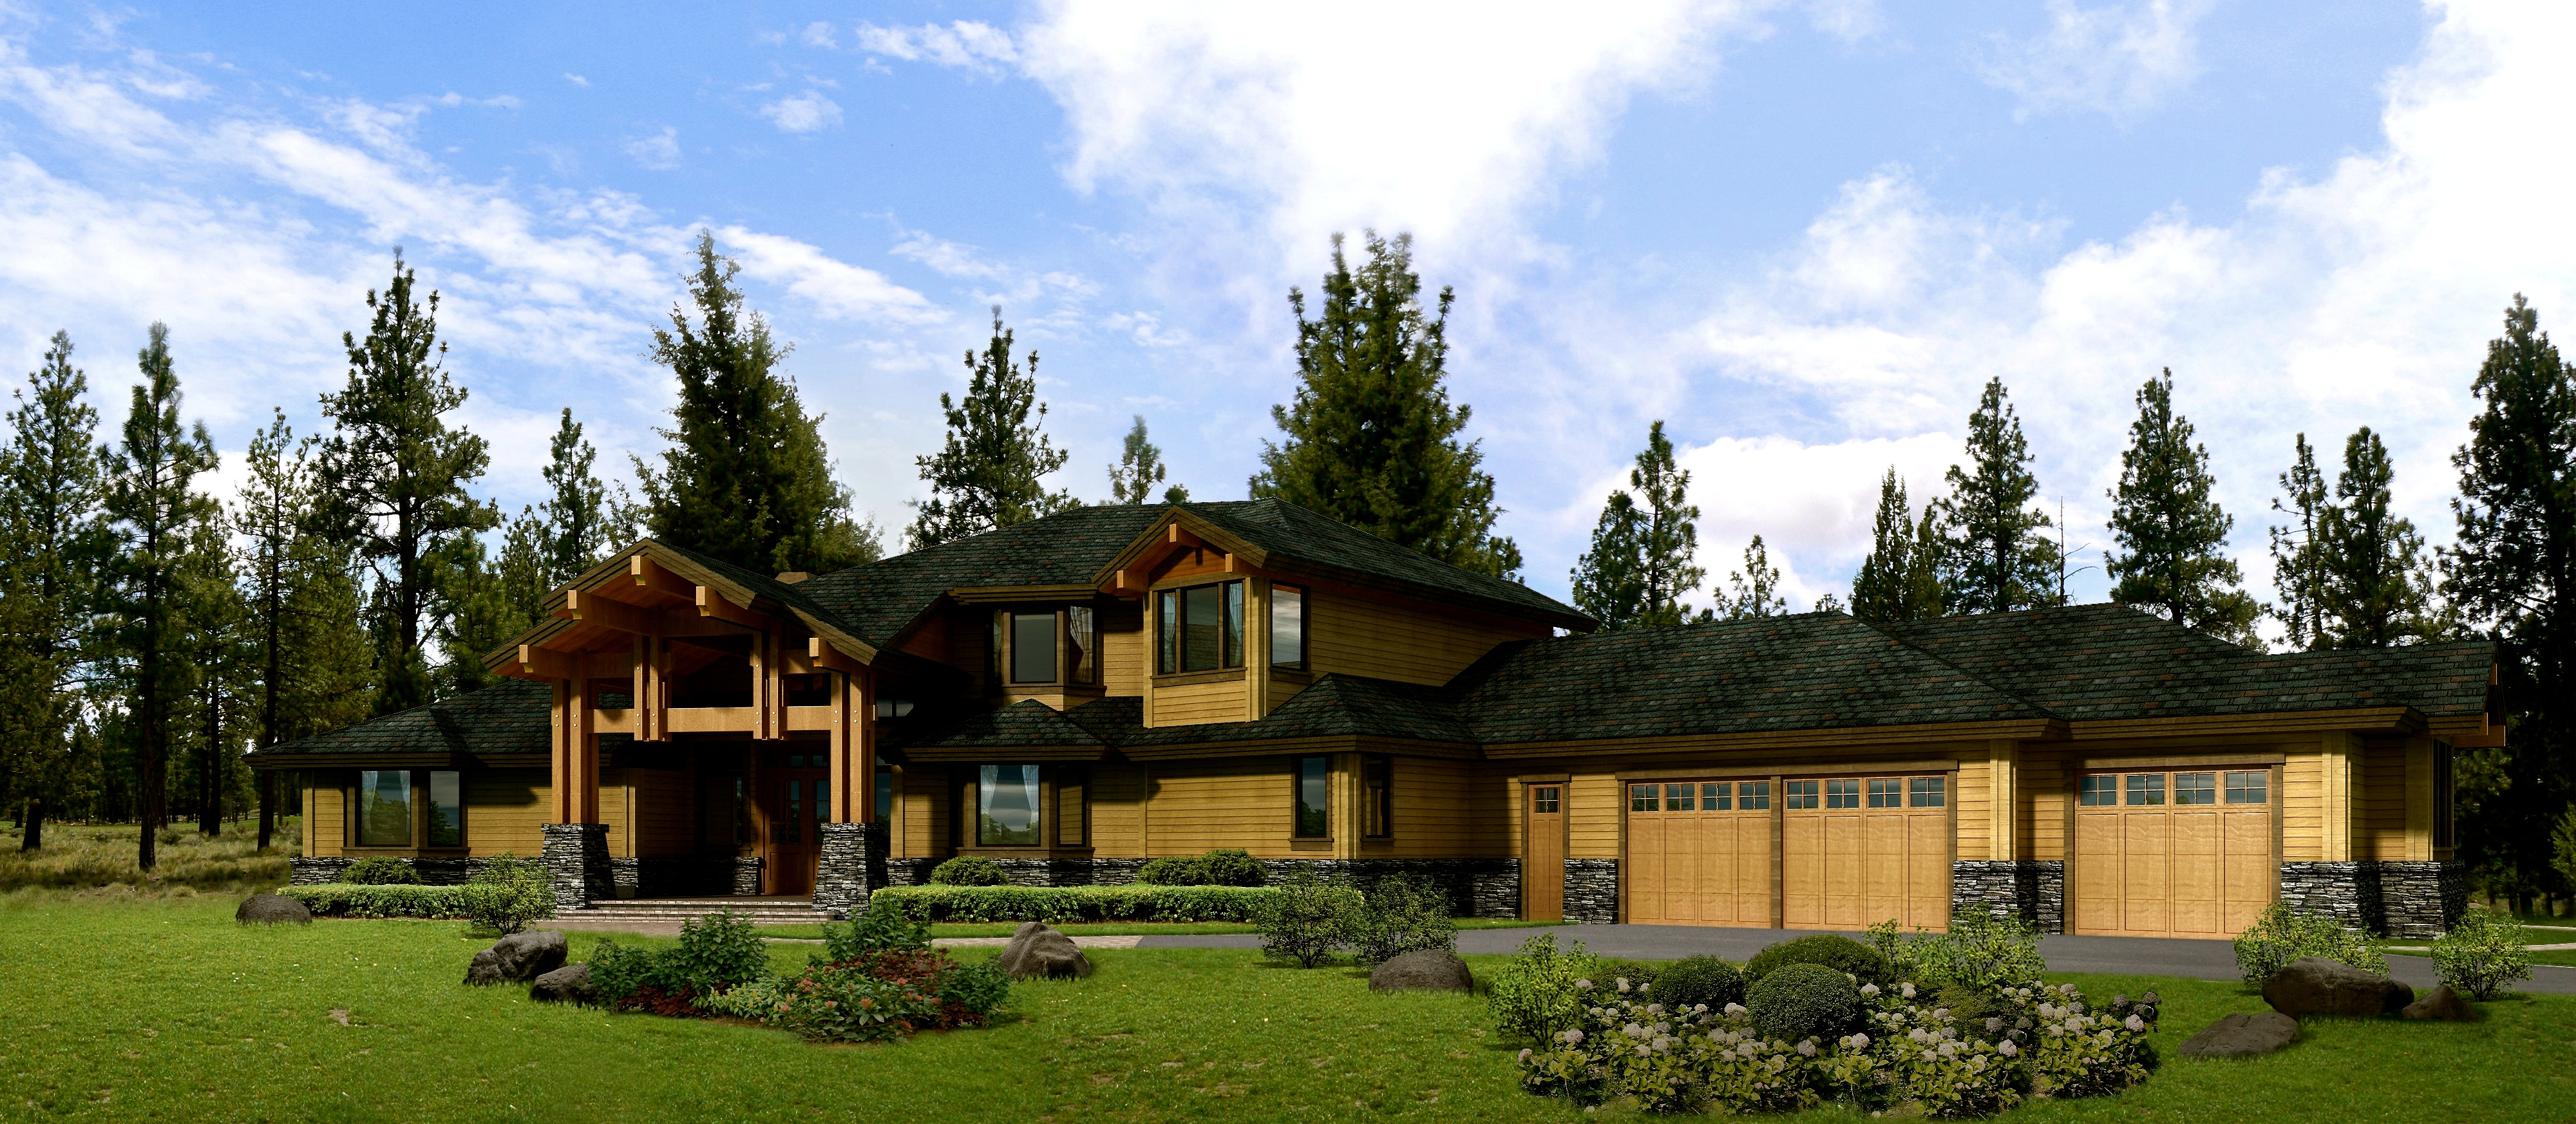 Wooded Golf Course Residence